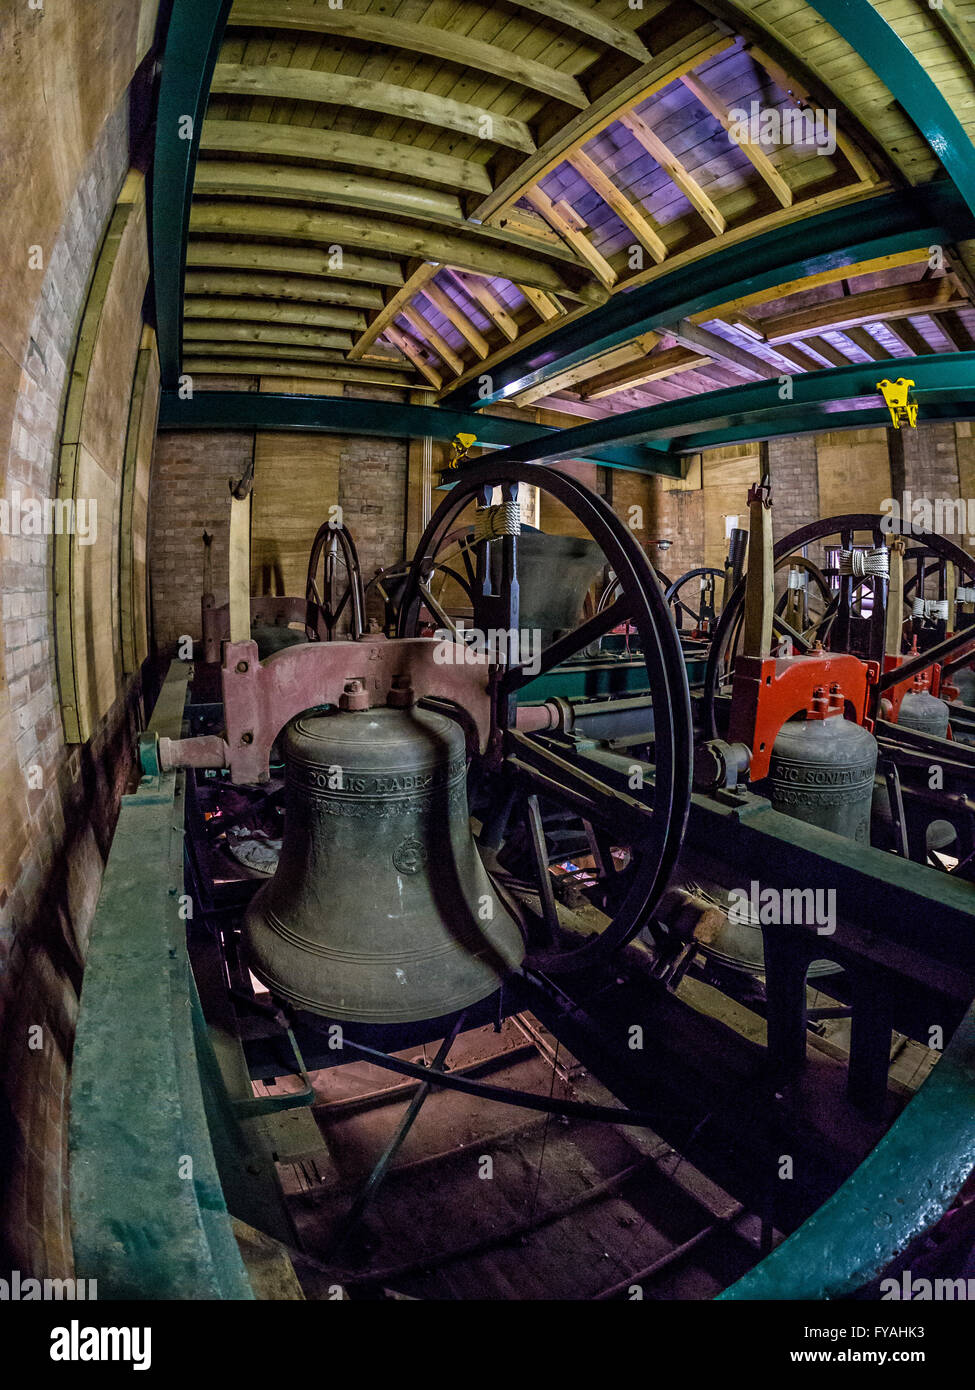 Bells in bell tower, Selby Abbey, North Yorkshire, UK. - Stock Image